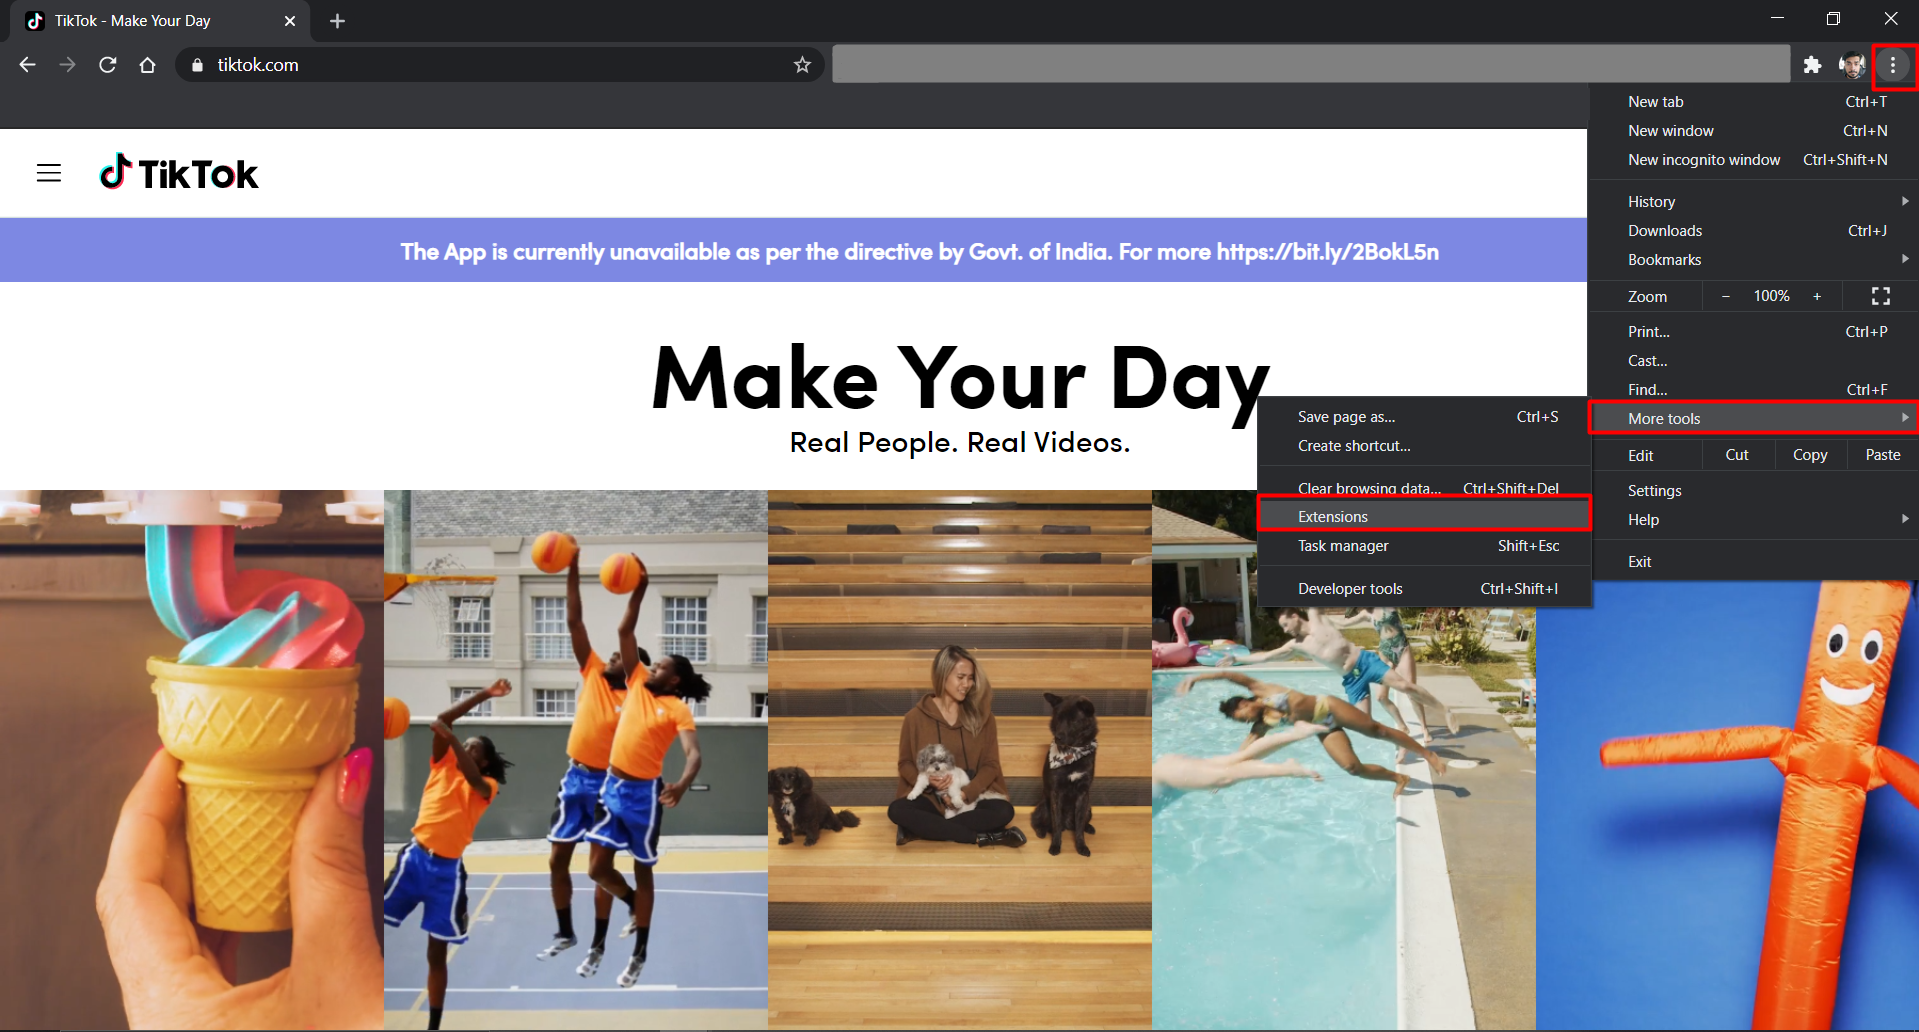 open extension page